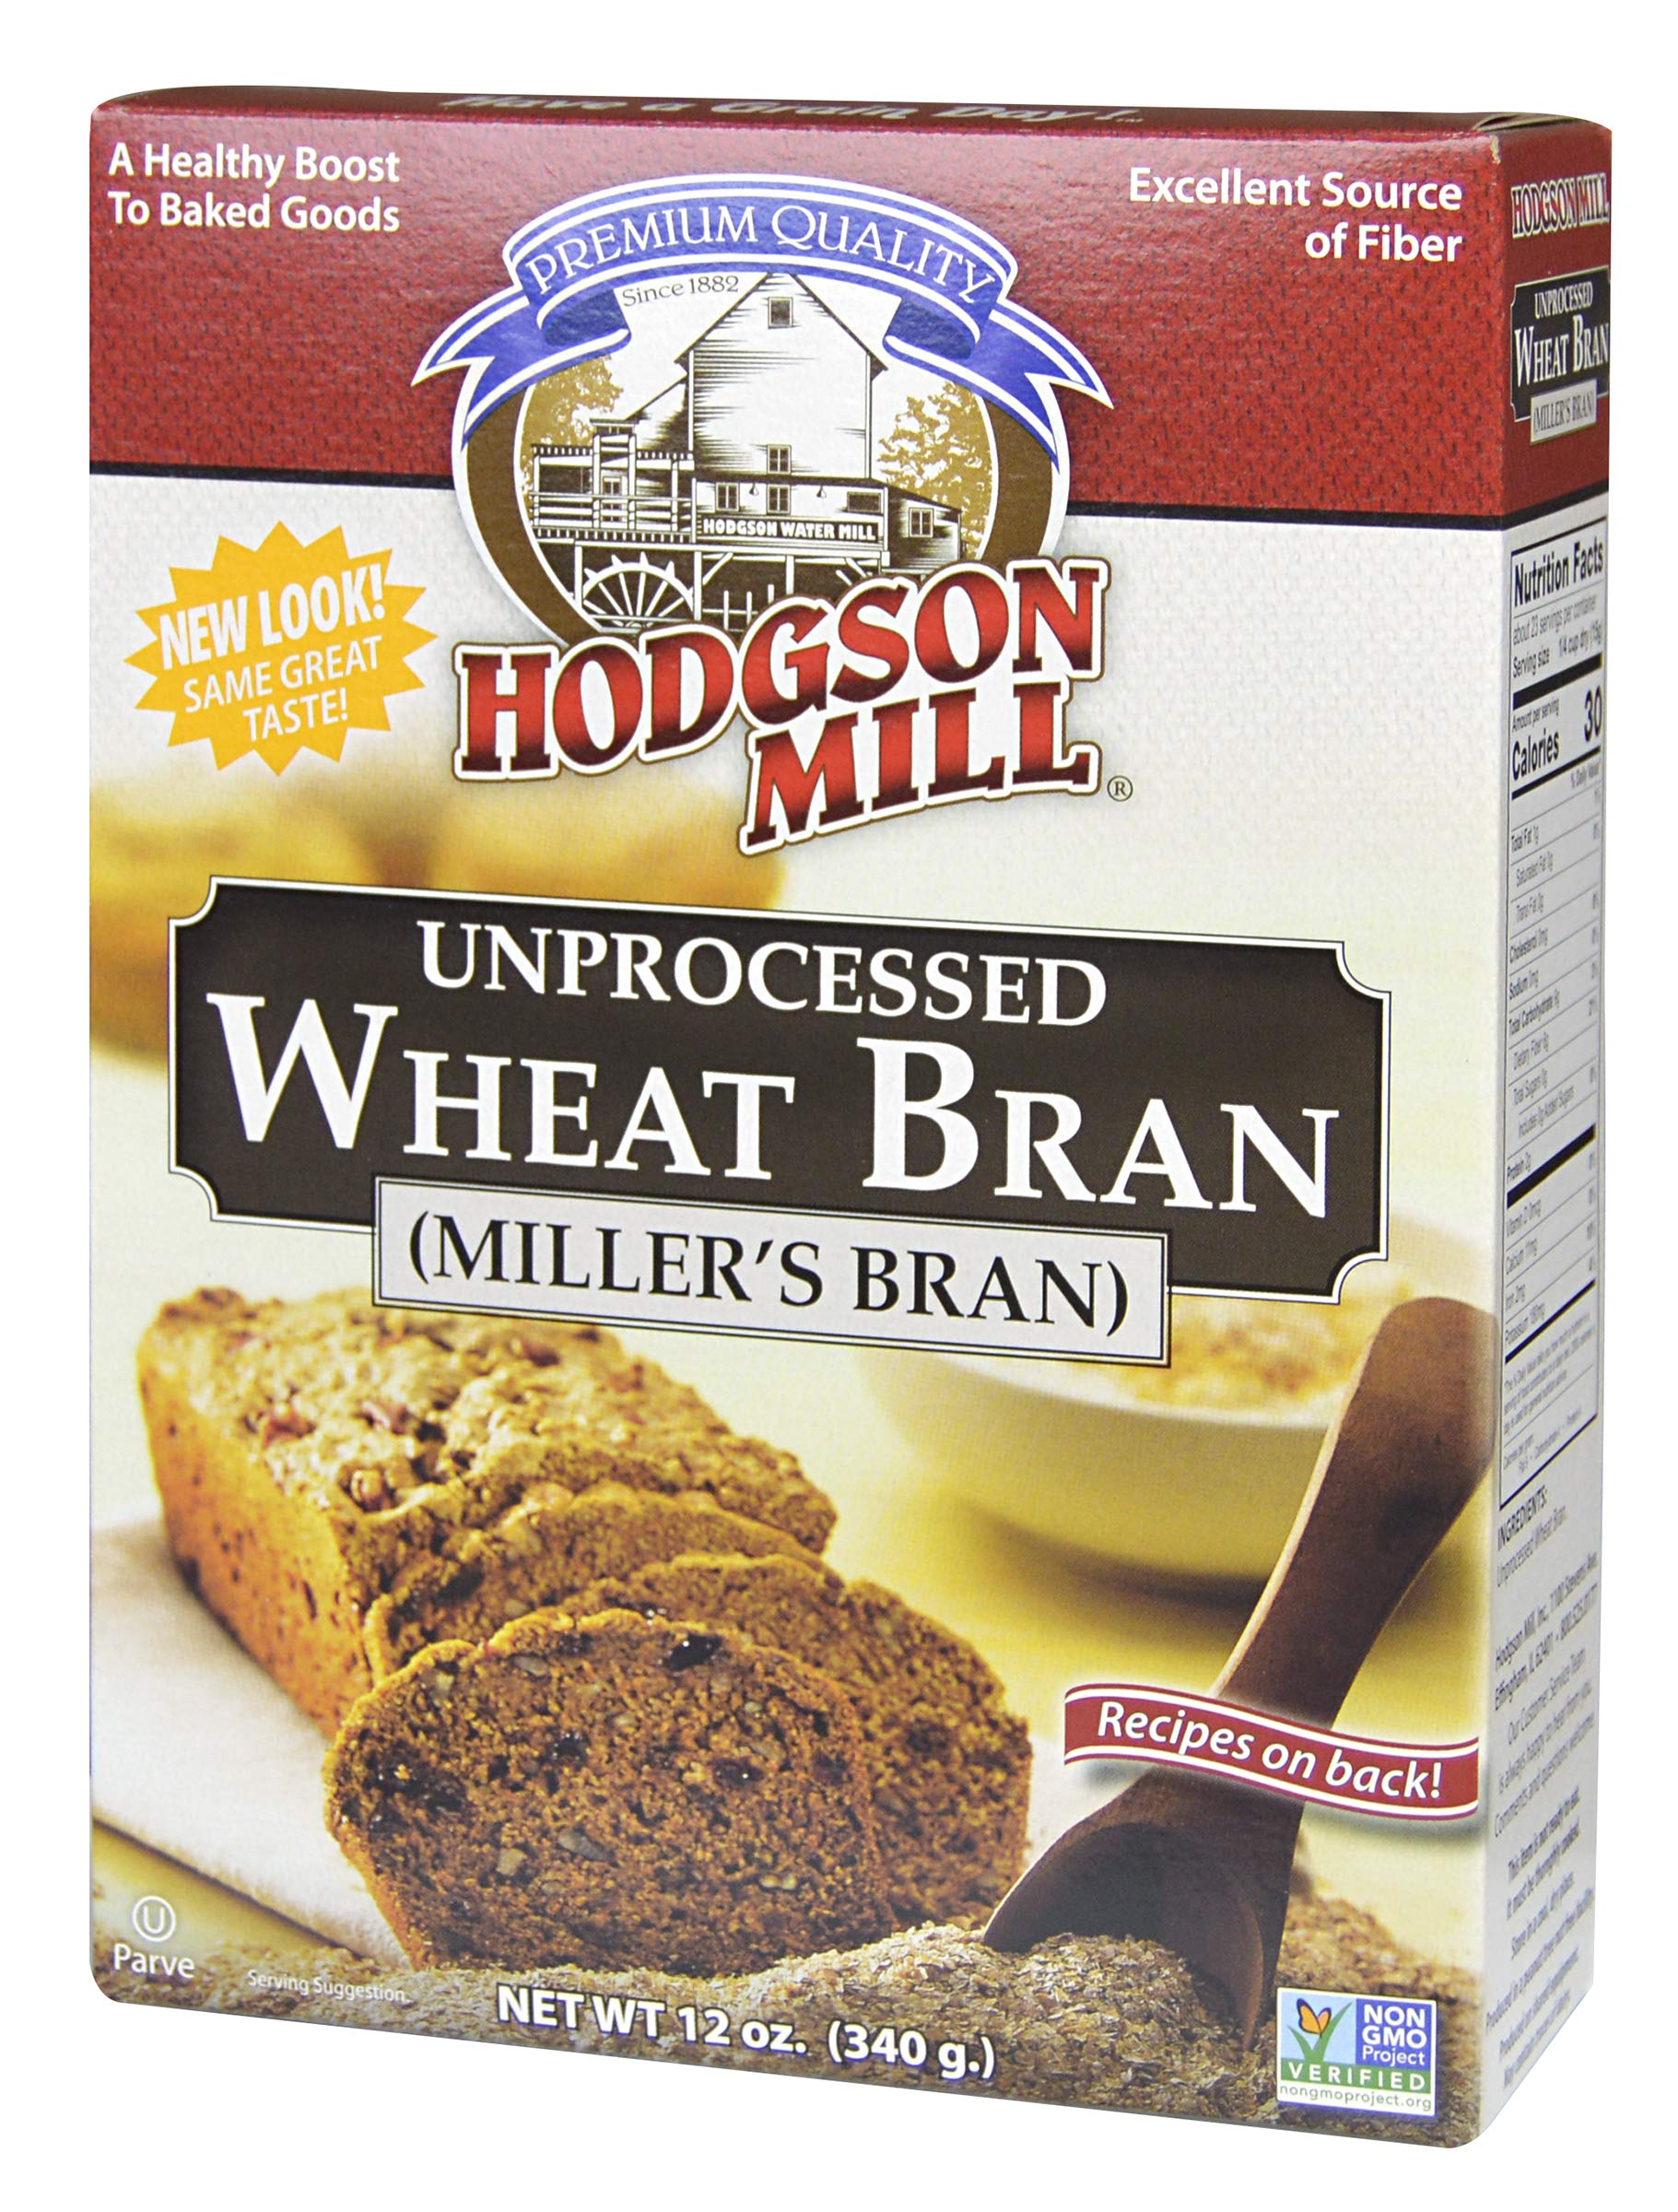 Hodgson Mill Wheat Bran, Unprocessed Millers Bran, 12-Ounce (Pack of 6) by Hodgson Mill (Image #1)